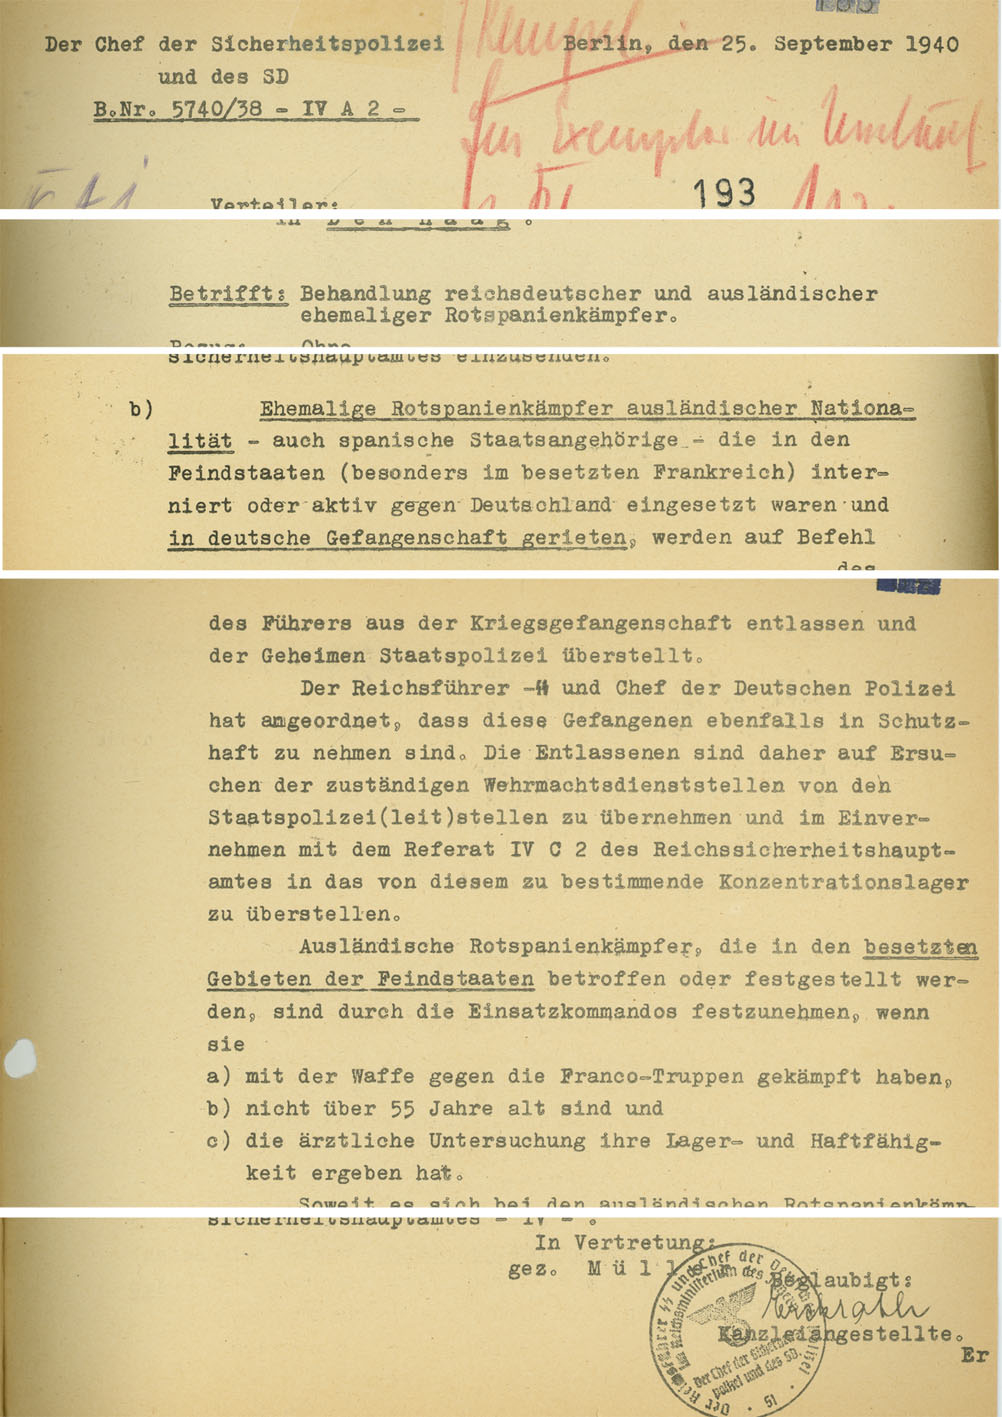 Memorandum by the Chief of the Security Police and the SD, dated 25th September 1940, concerning the treatment of foreign and German former combatants in Spain. The ordinance accompanying this memo provided the basis for the mass deportation of former members of the Republican Army to the concentration camps. (Bundesarchiv, Koblenz, R 58/26)